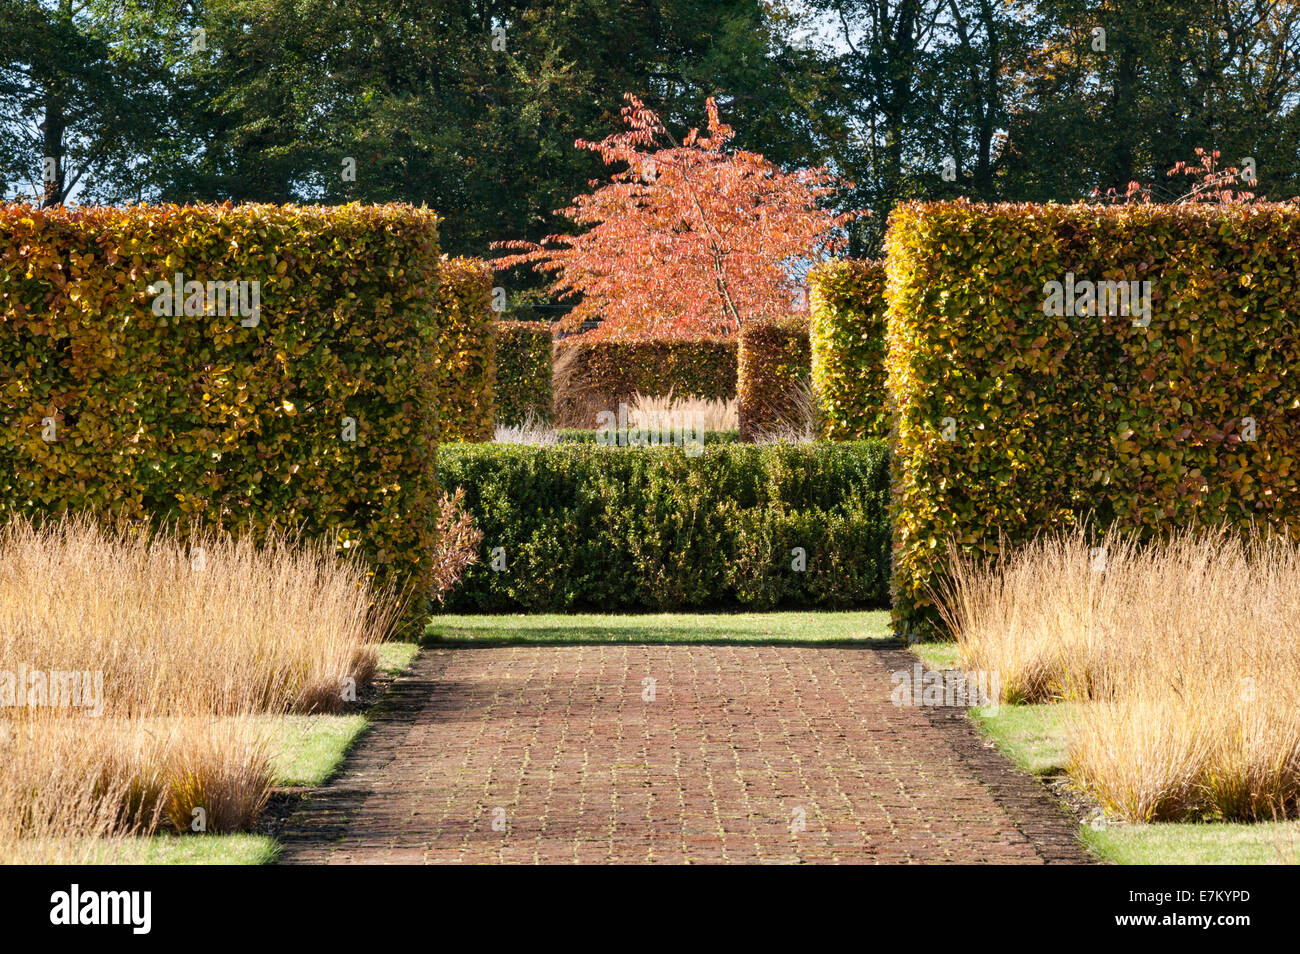 Piet oudolf stock photos piet oudolf stock images alamy for Piet oudolf fall winter spring summer fall